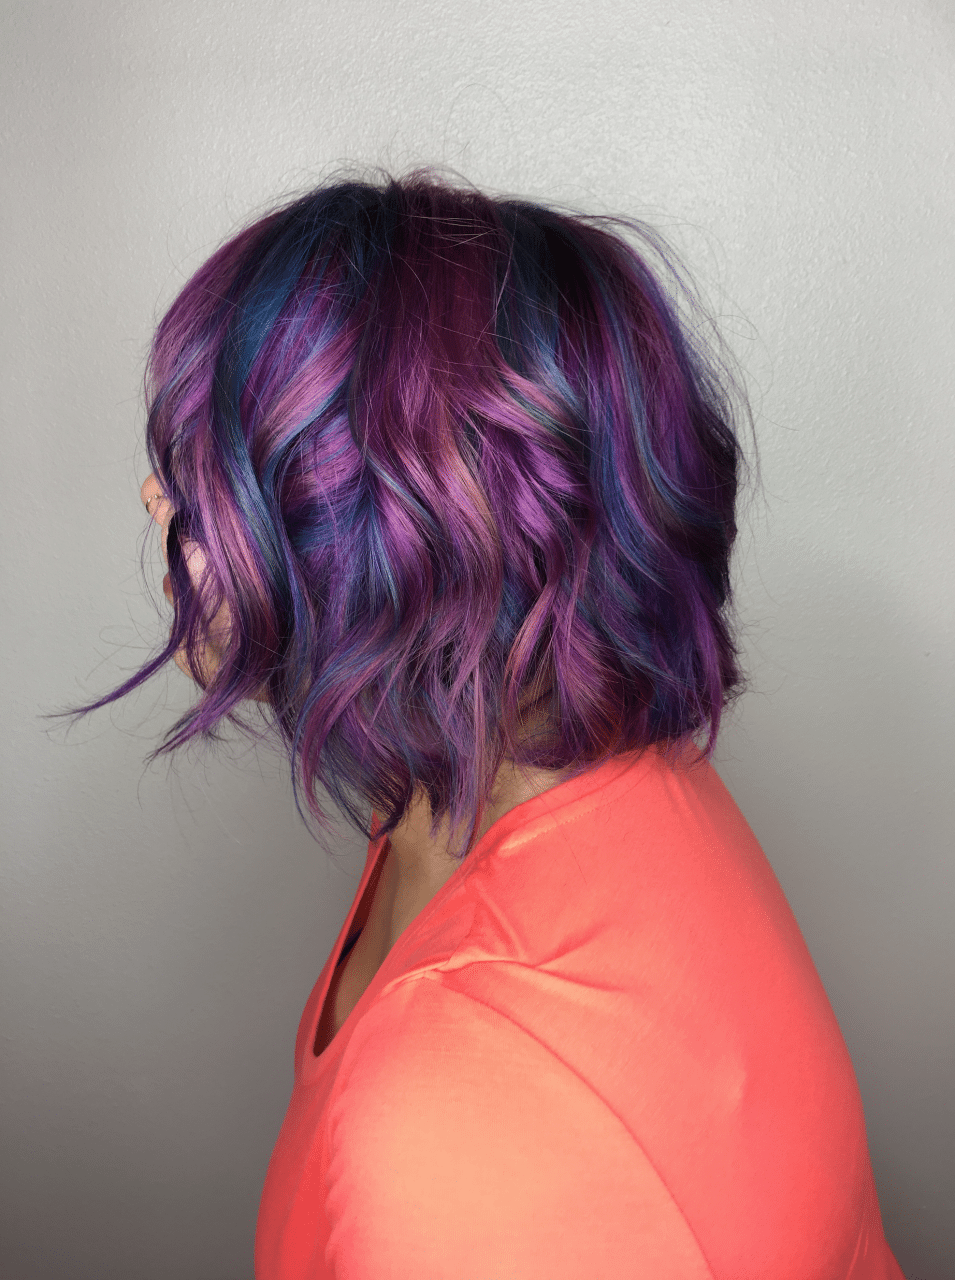 The Best Vibrant Hair Color Shades for Your Personality - Beehive ...